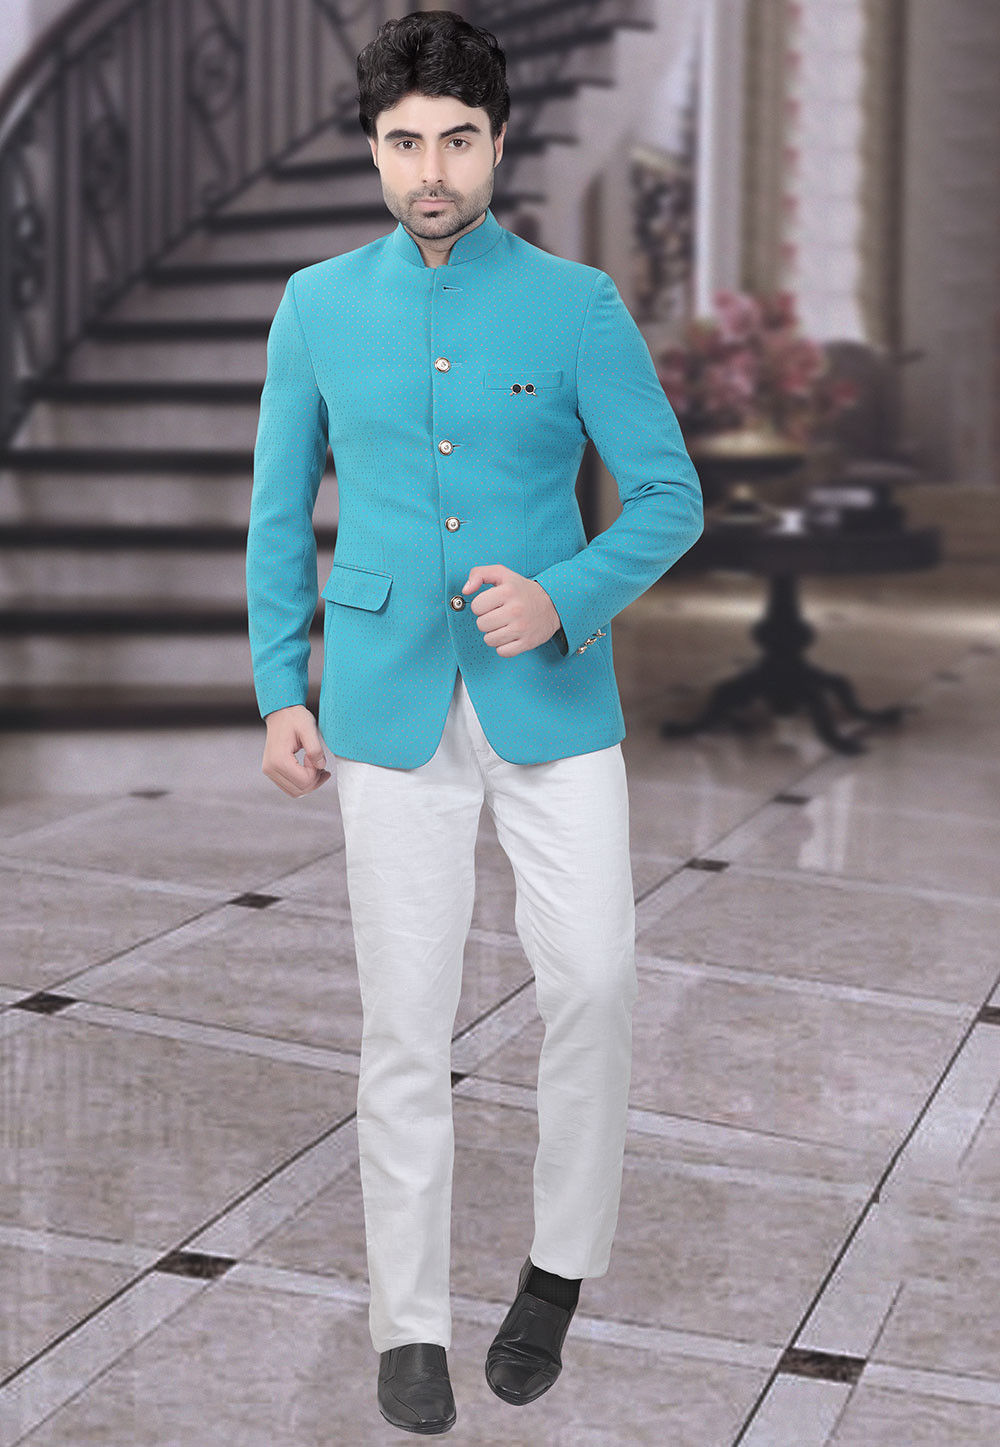 Jodhpuri Suit: Buy Designer Bandhgala Suit for Men Online | Utsav ...